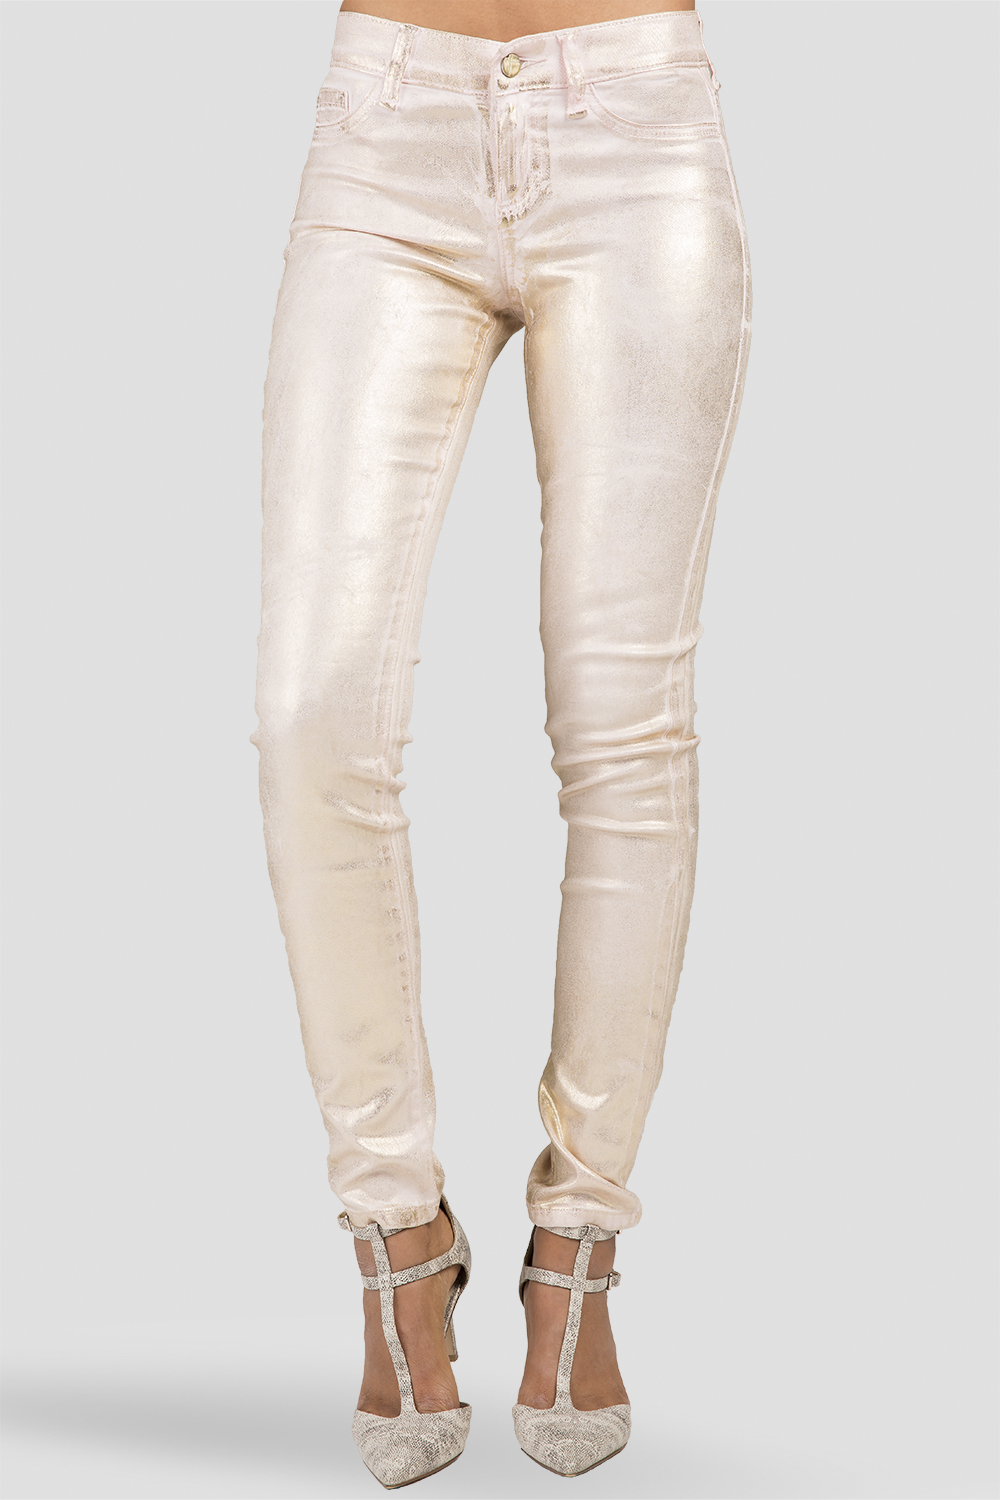 Women Metallic Pink Gold Skinny Jeans